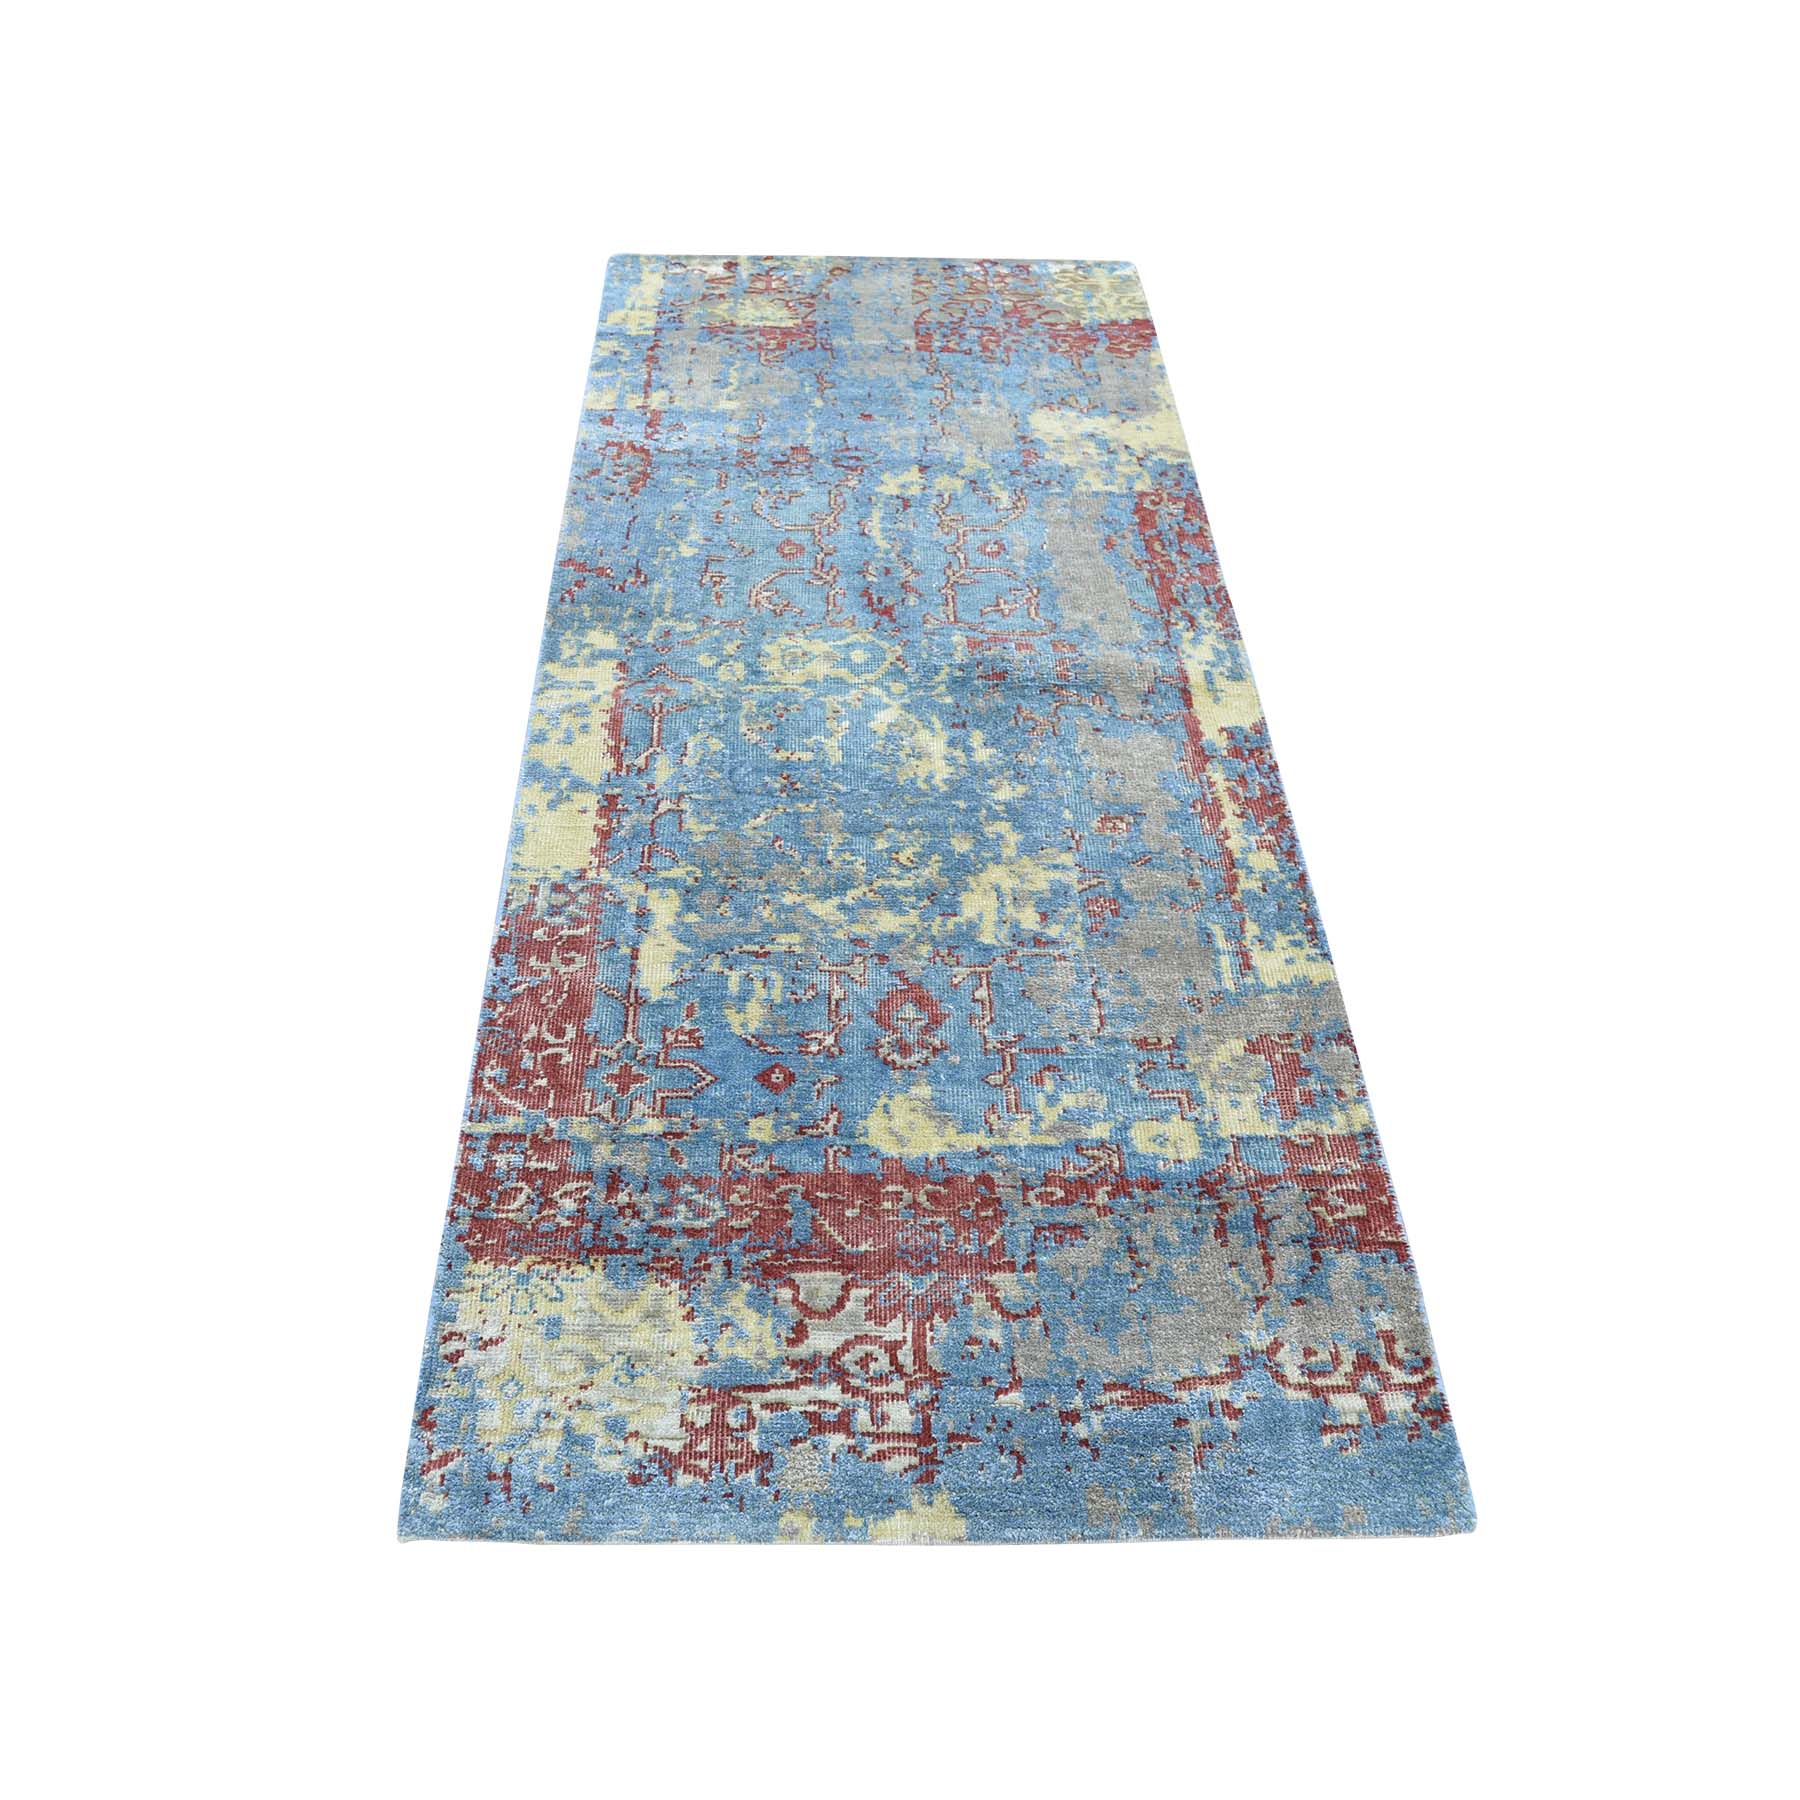 2-5 x6- Hand-Knotted Silk With Oxidized Wool Broken Design Runner Rug